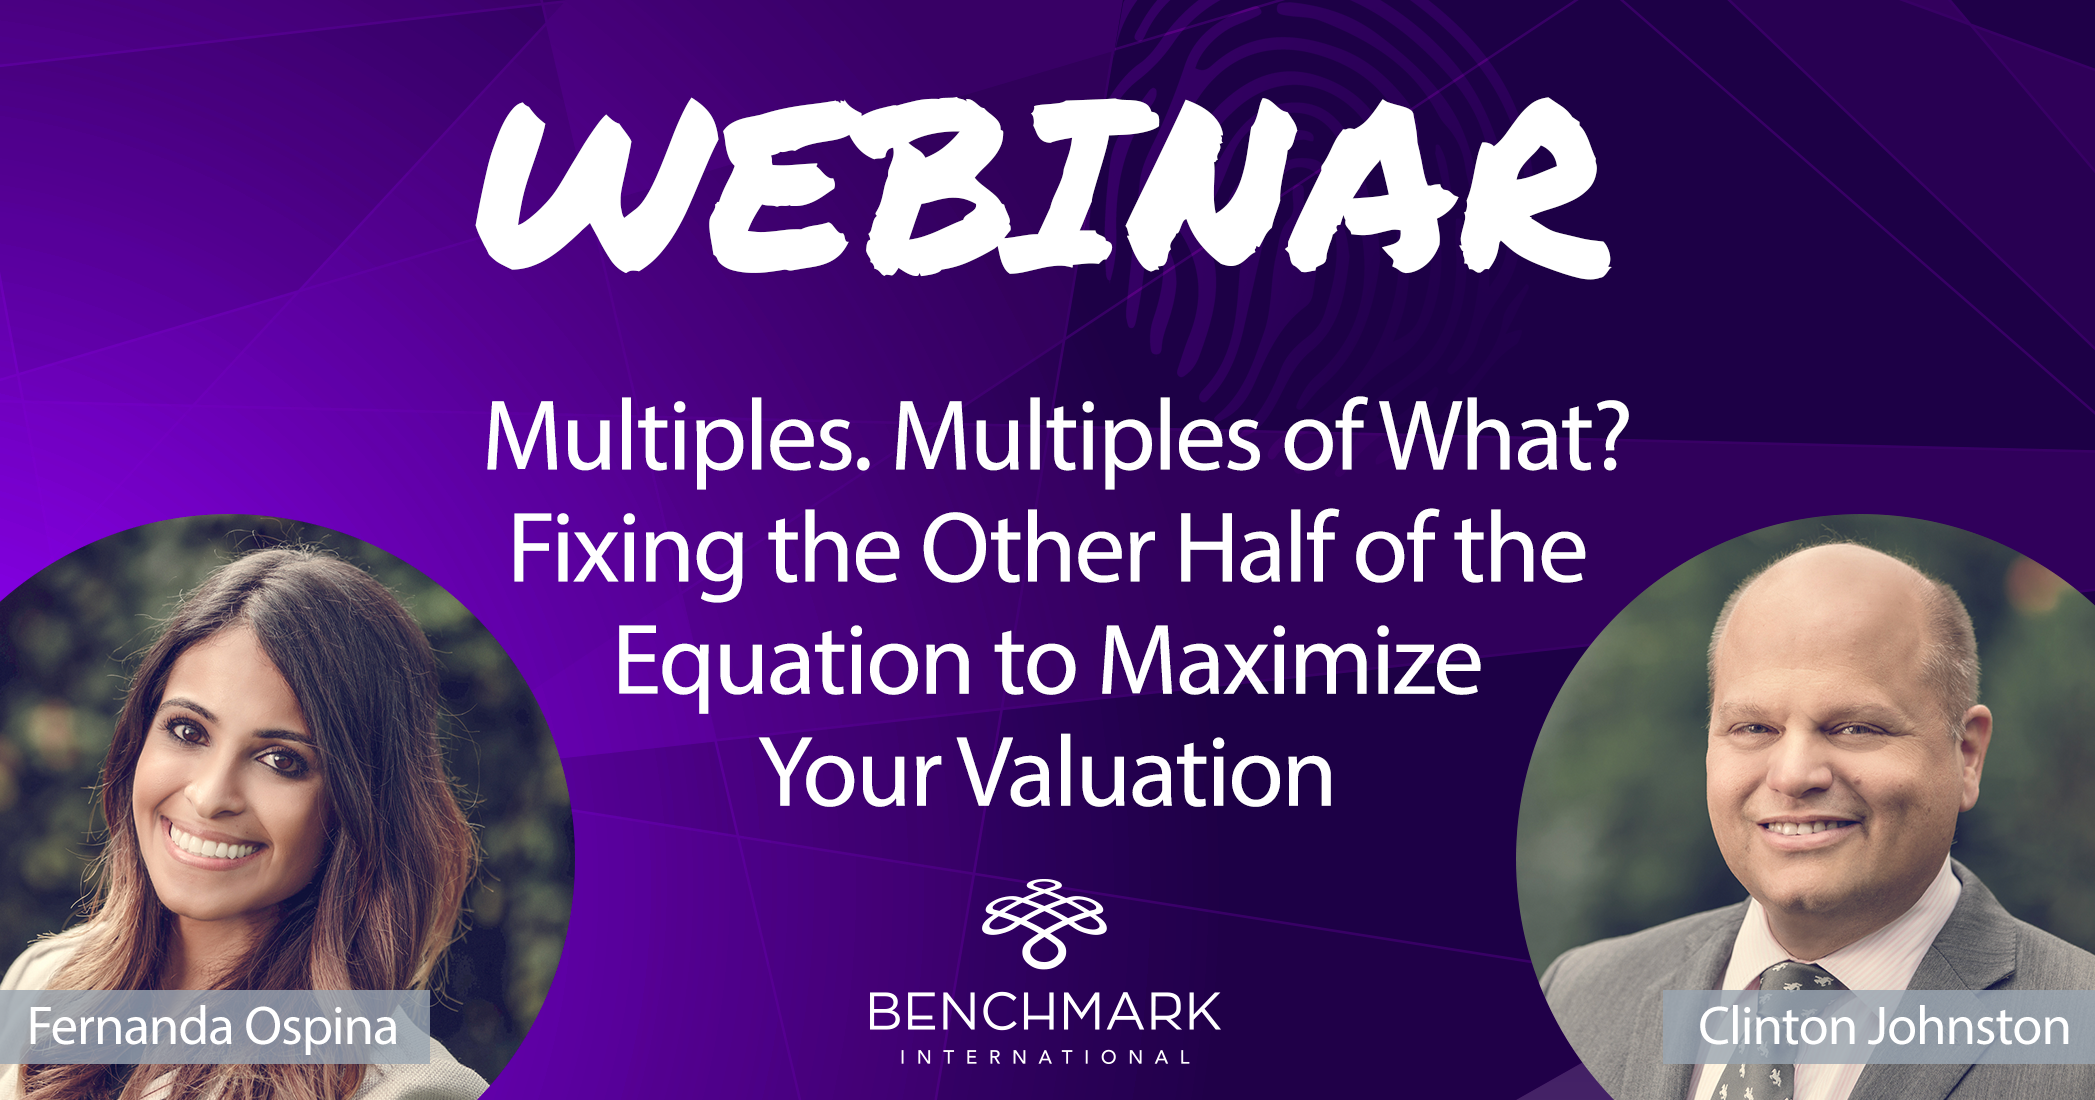 Register for our webinar: Multiples. Multiples of What? Fixing the Other Half of the Equation to Maximize Your Valuation